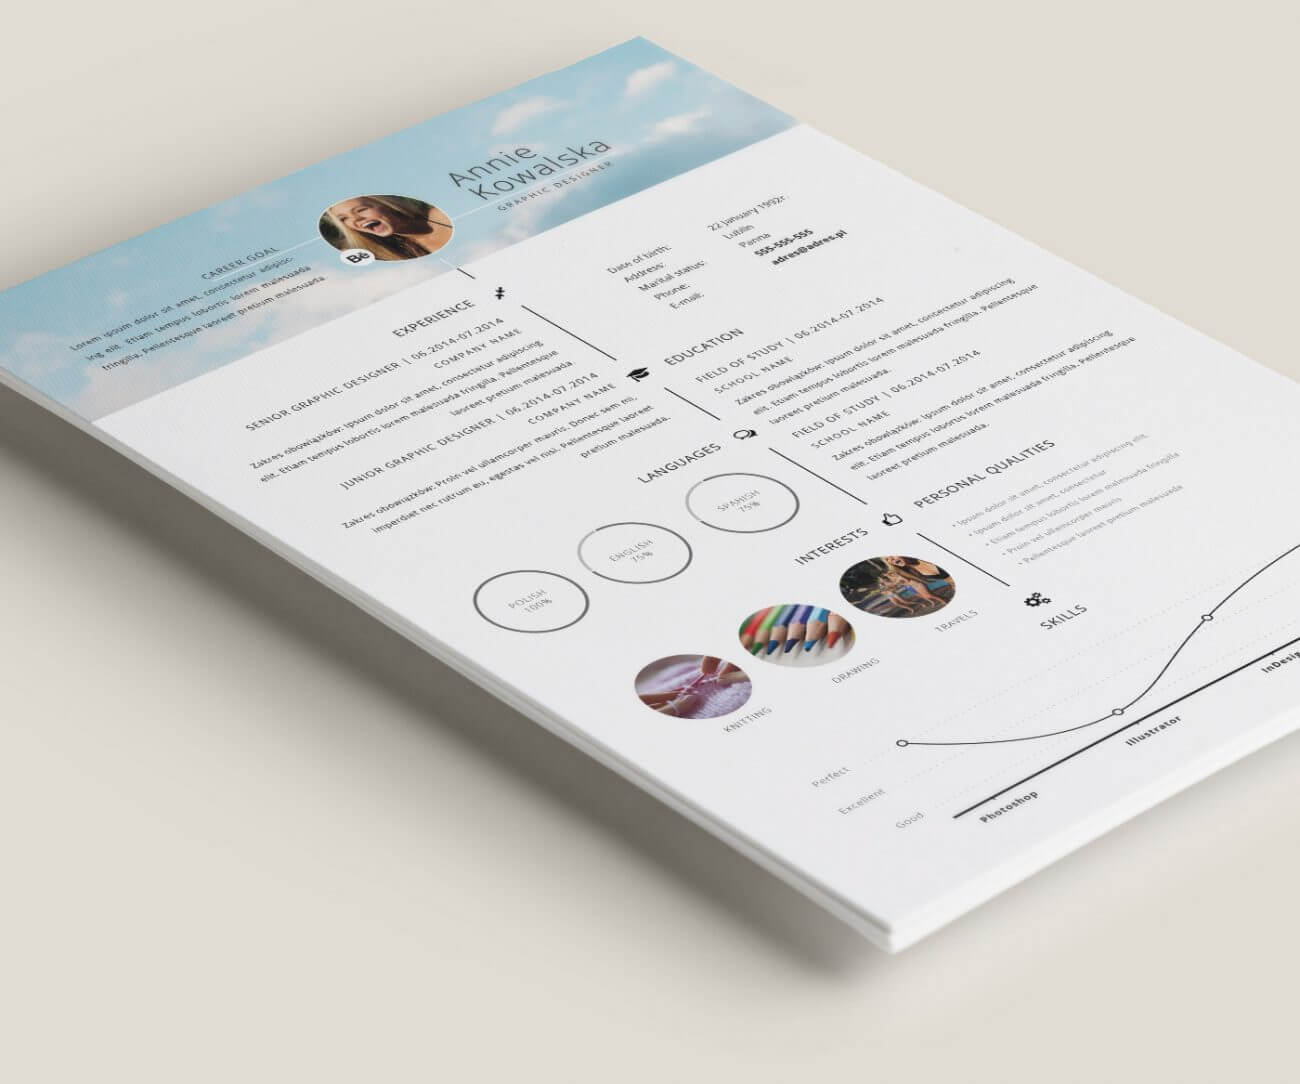 40 Creative Resume Templates You'll Want To Steal in 2018